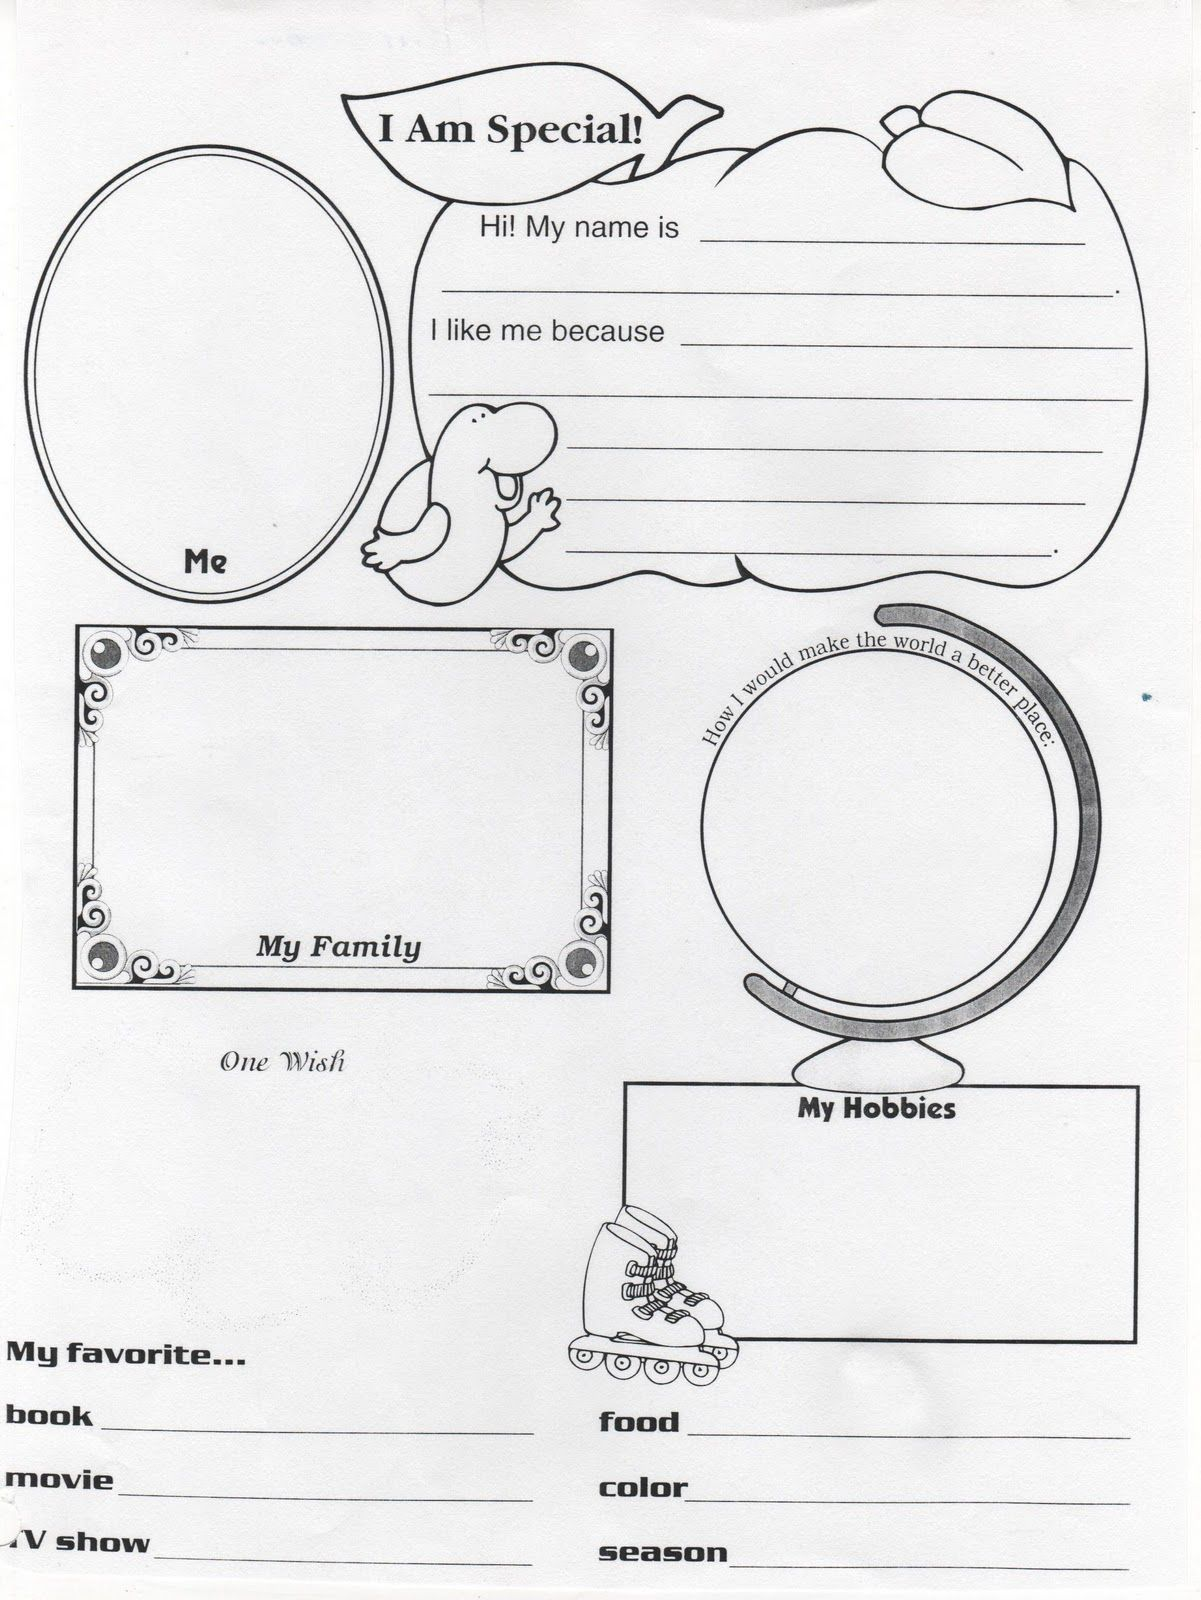 I AM Special Because Worksheet | Wednesday, August 18, 2010 ...